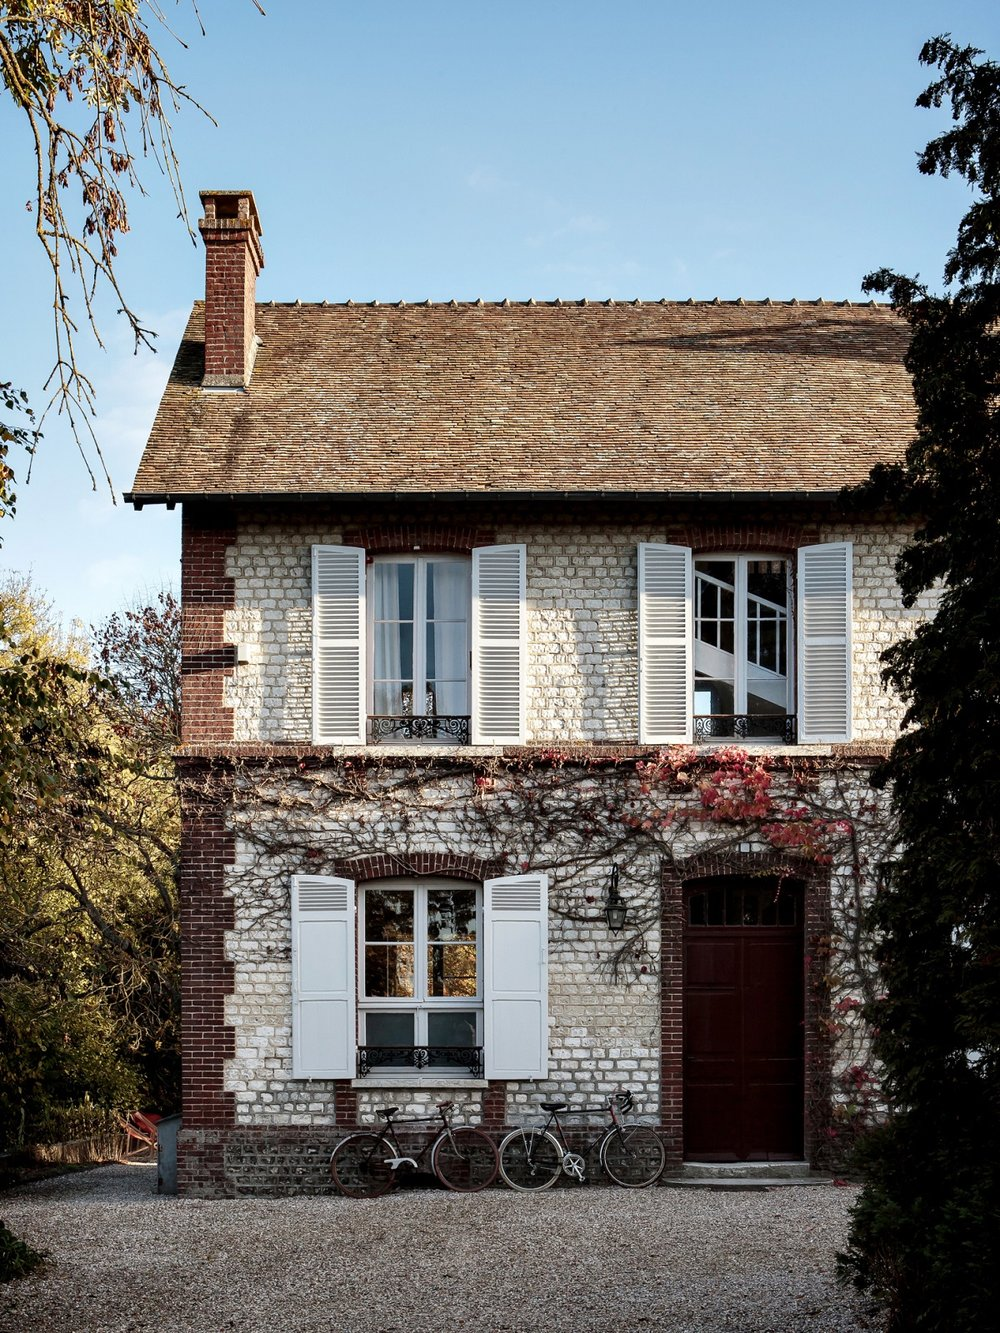 The Nordroom - Riverside House: A Stunning Rental Guesthouse in Normandy